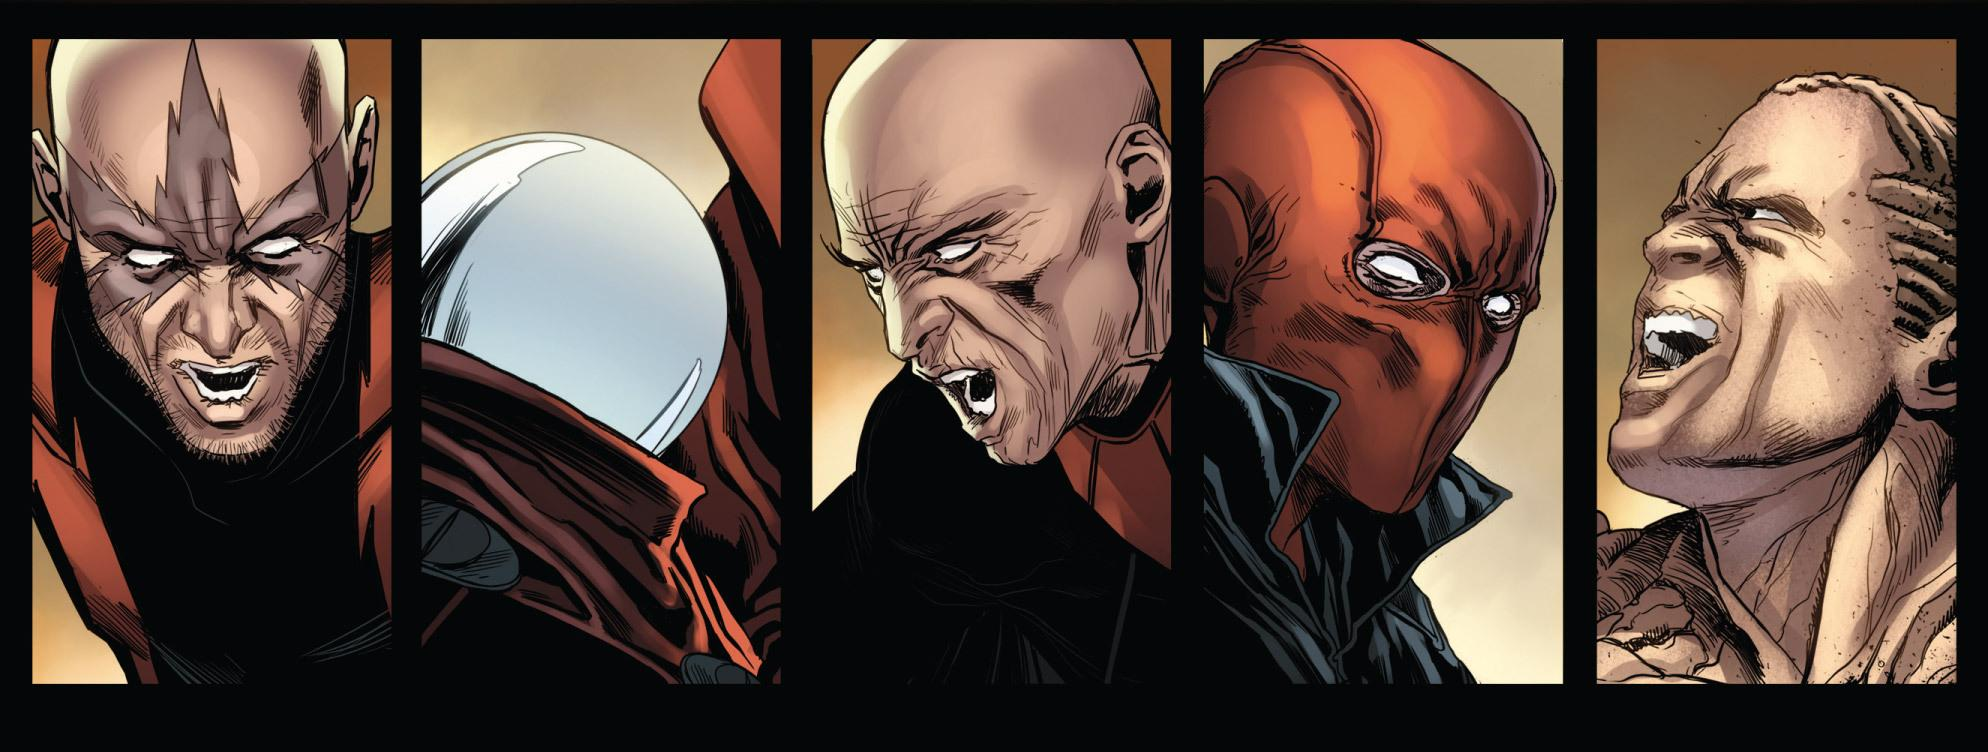 Superior Six (Earth-616) from Superior Spider-Man Team-Up Vol 1 7 001.jpg